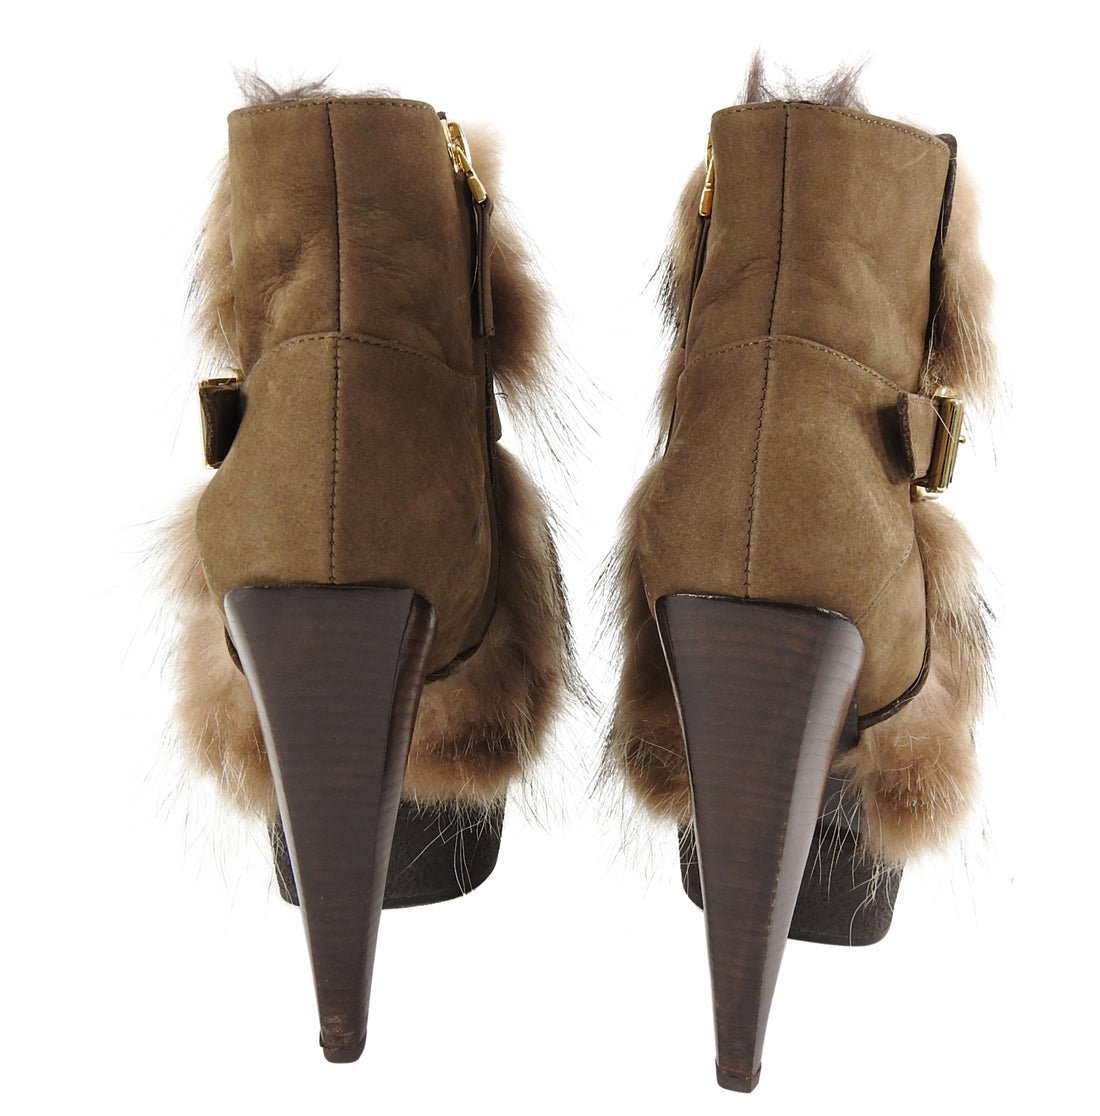 Fendi Fur and Suede Platform Ankle Boots - 37.5